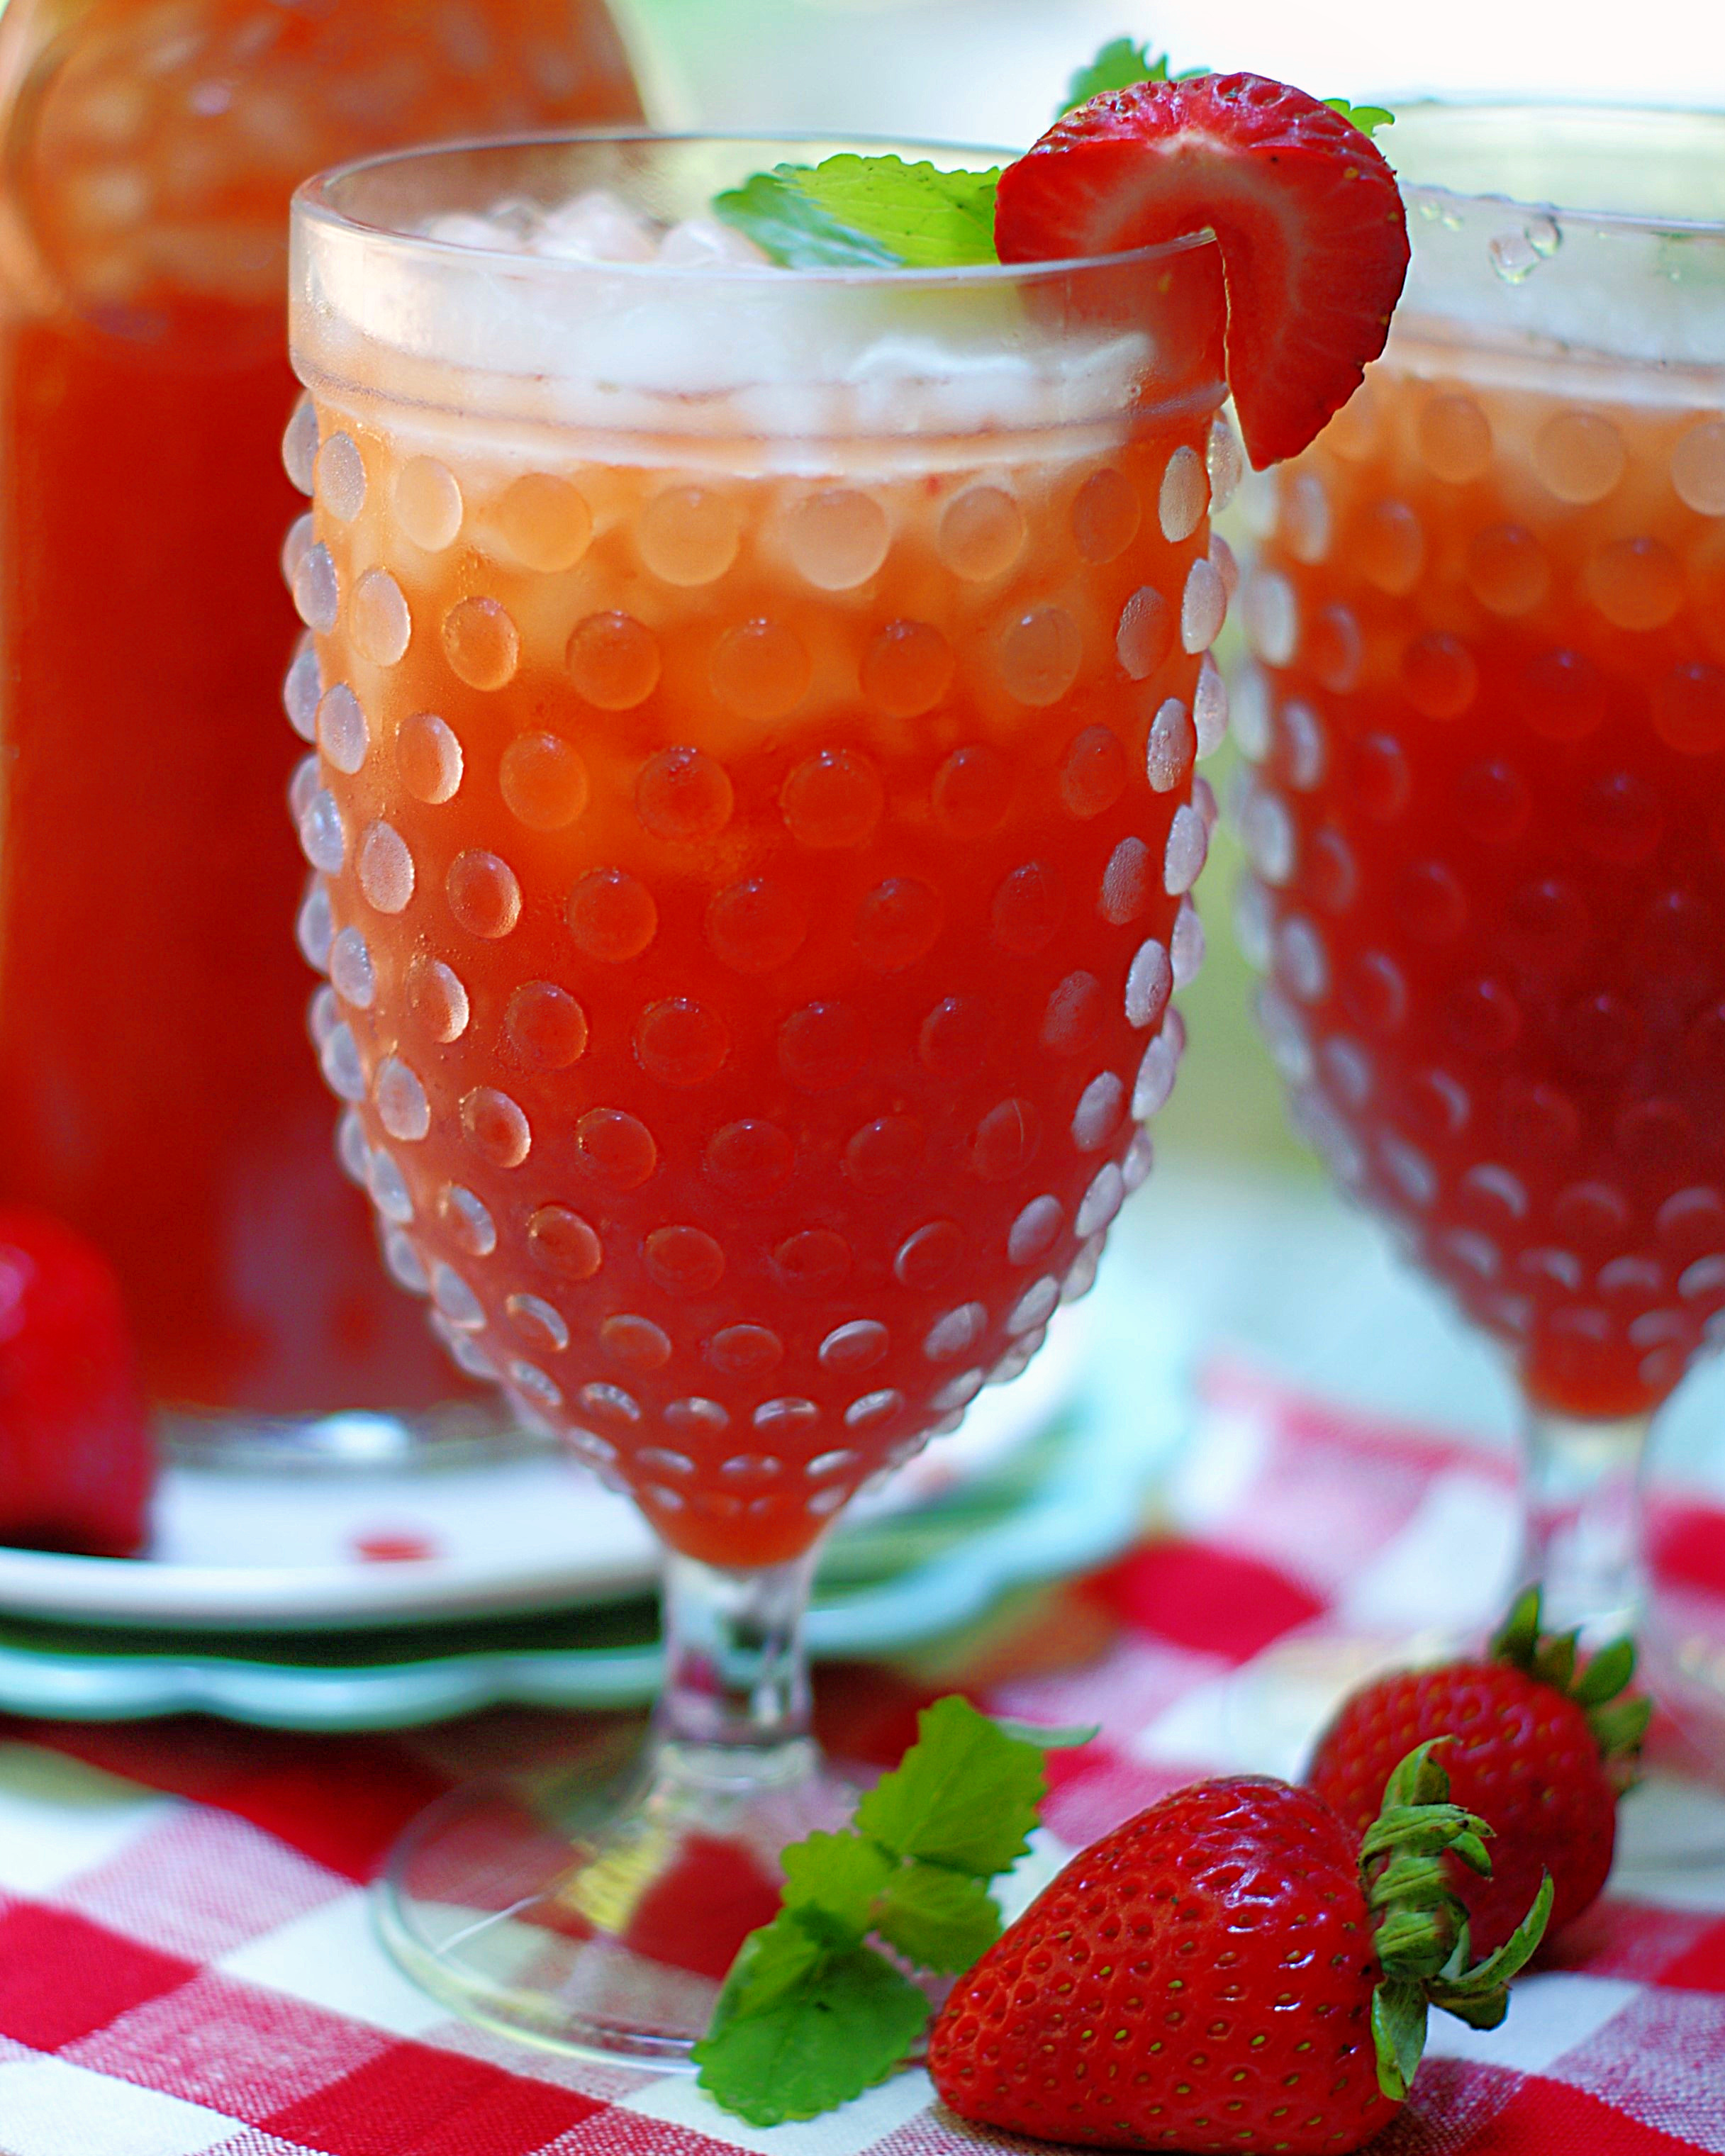 A stemmed hobnail glass with strawberry tea.